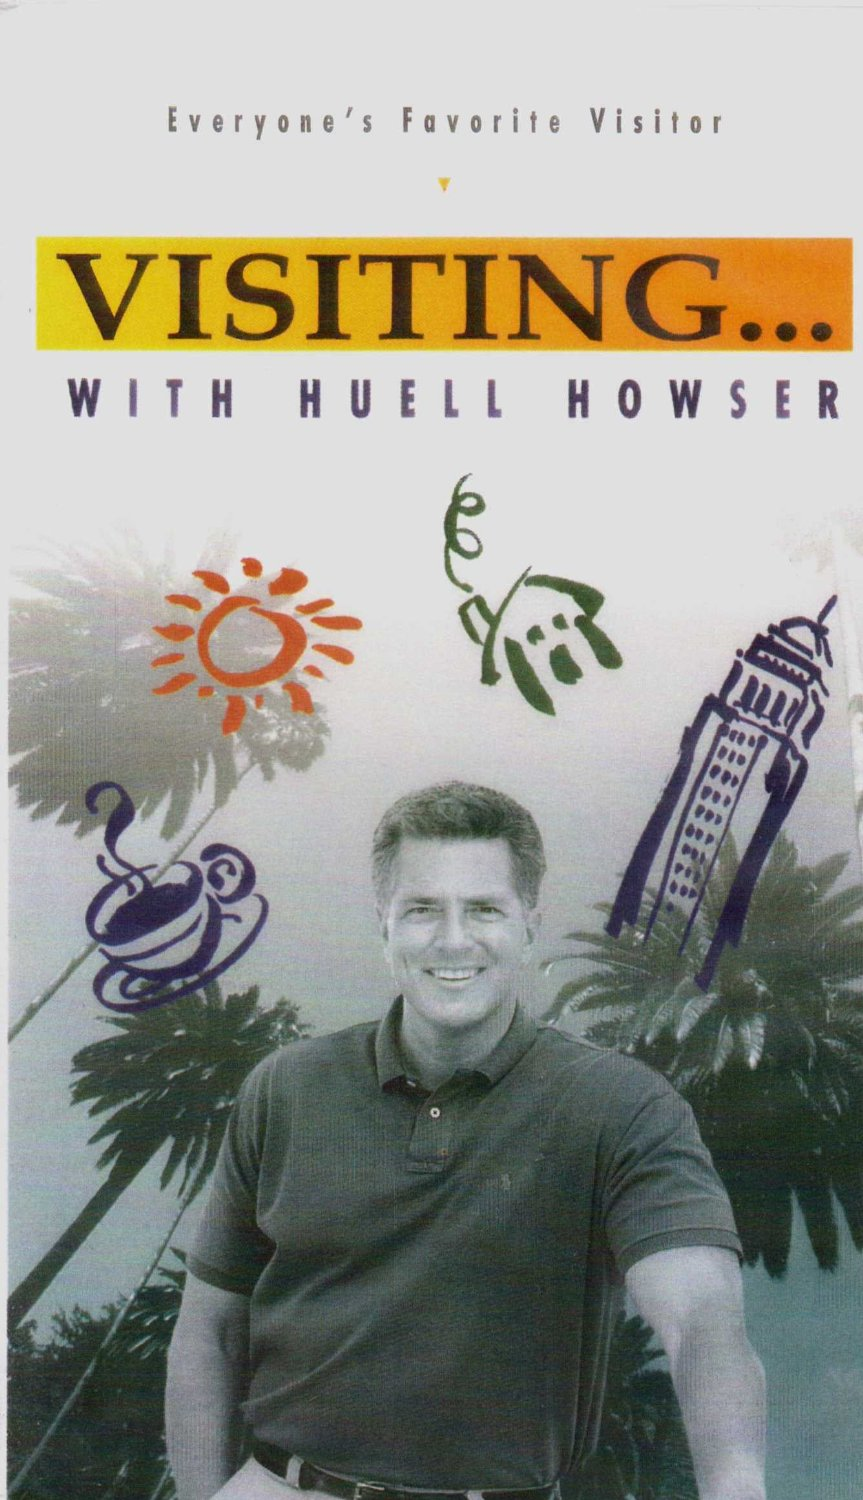 Huell Howser in Visiting... with Huell Howser (1993)